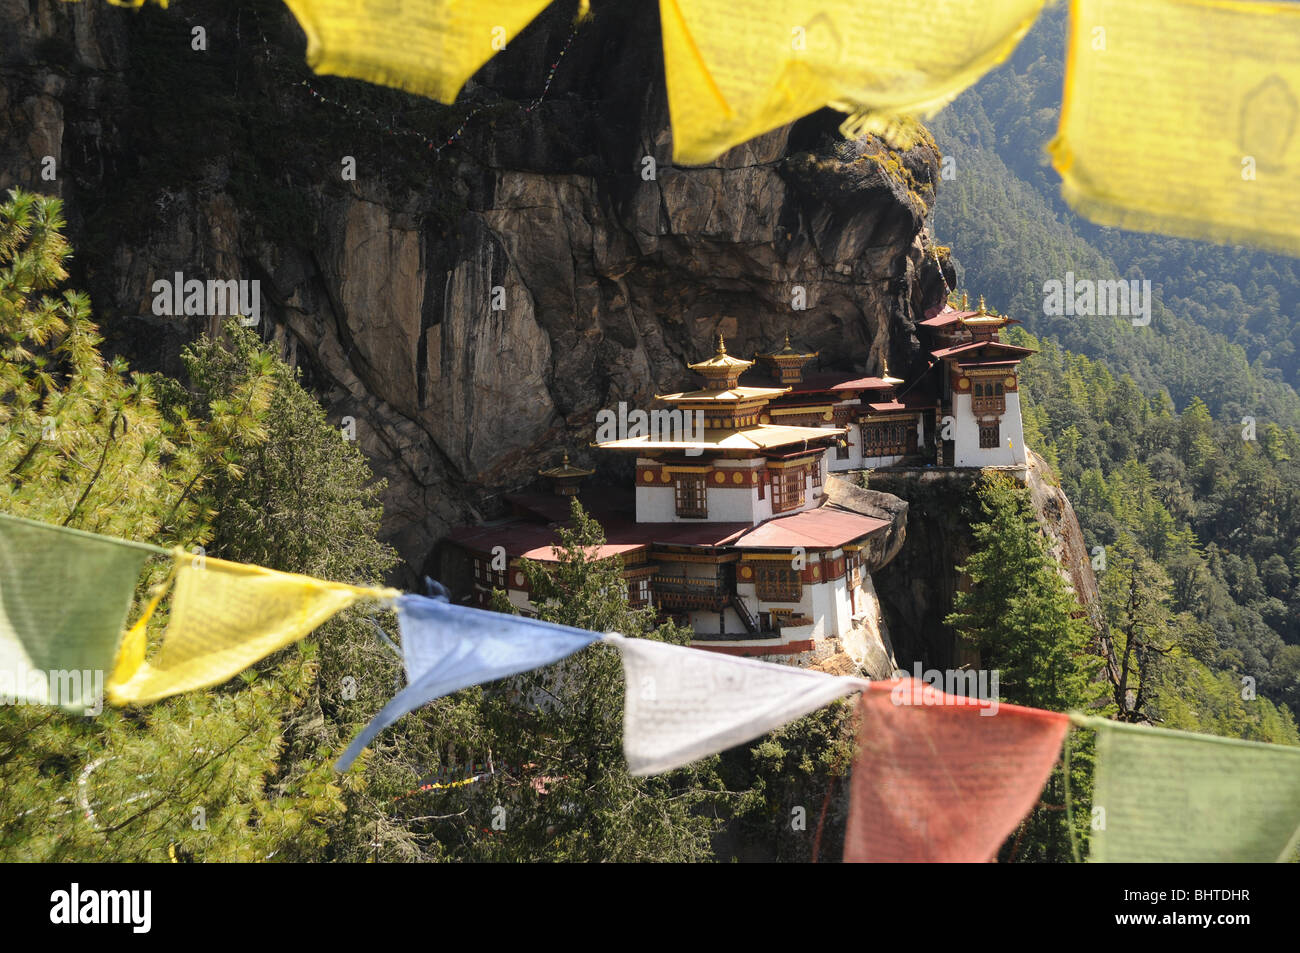 temple on a cliff face with prayerflags - Stock Image